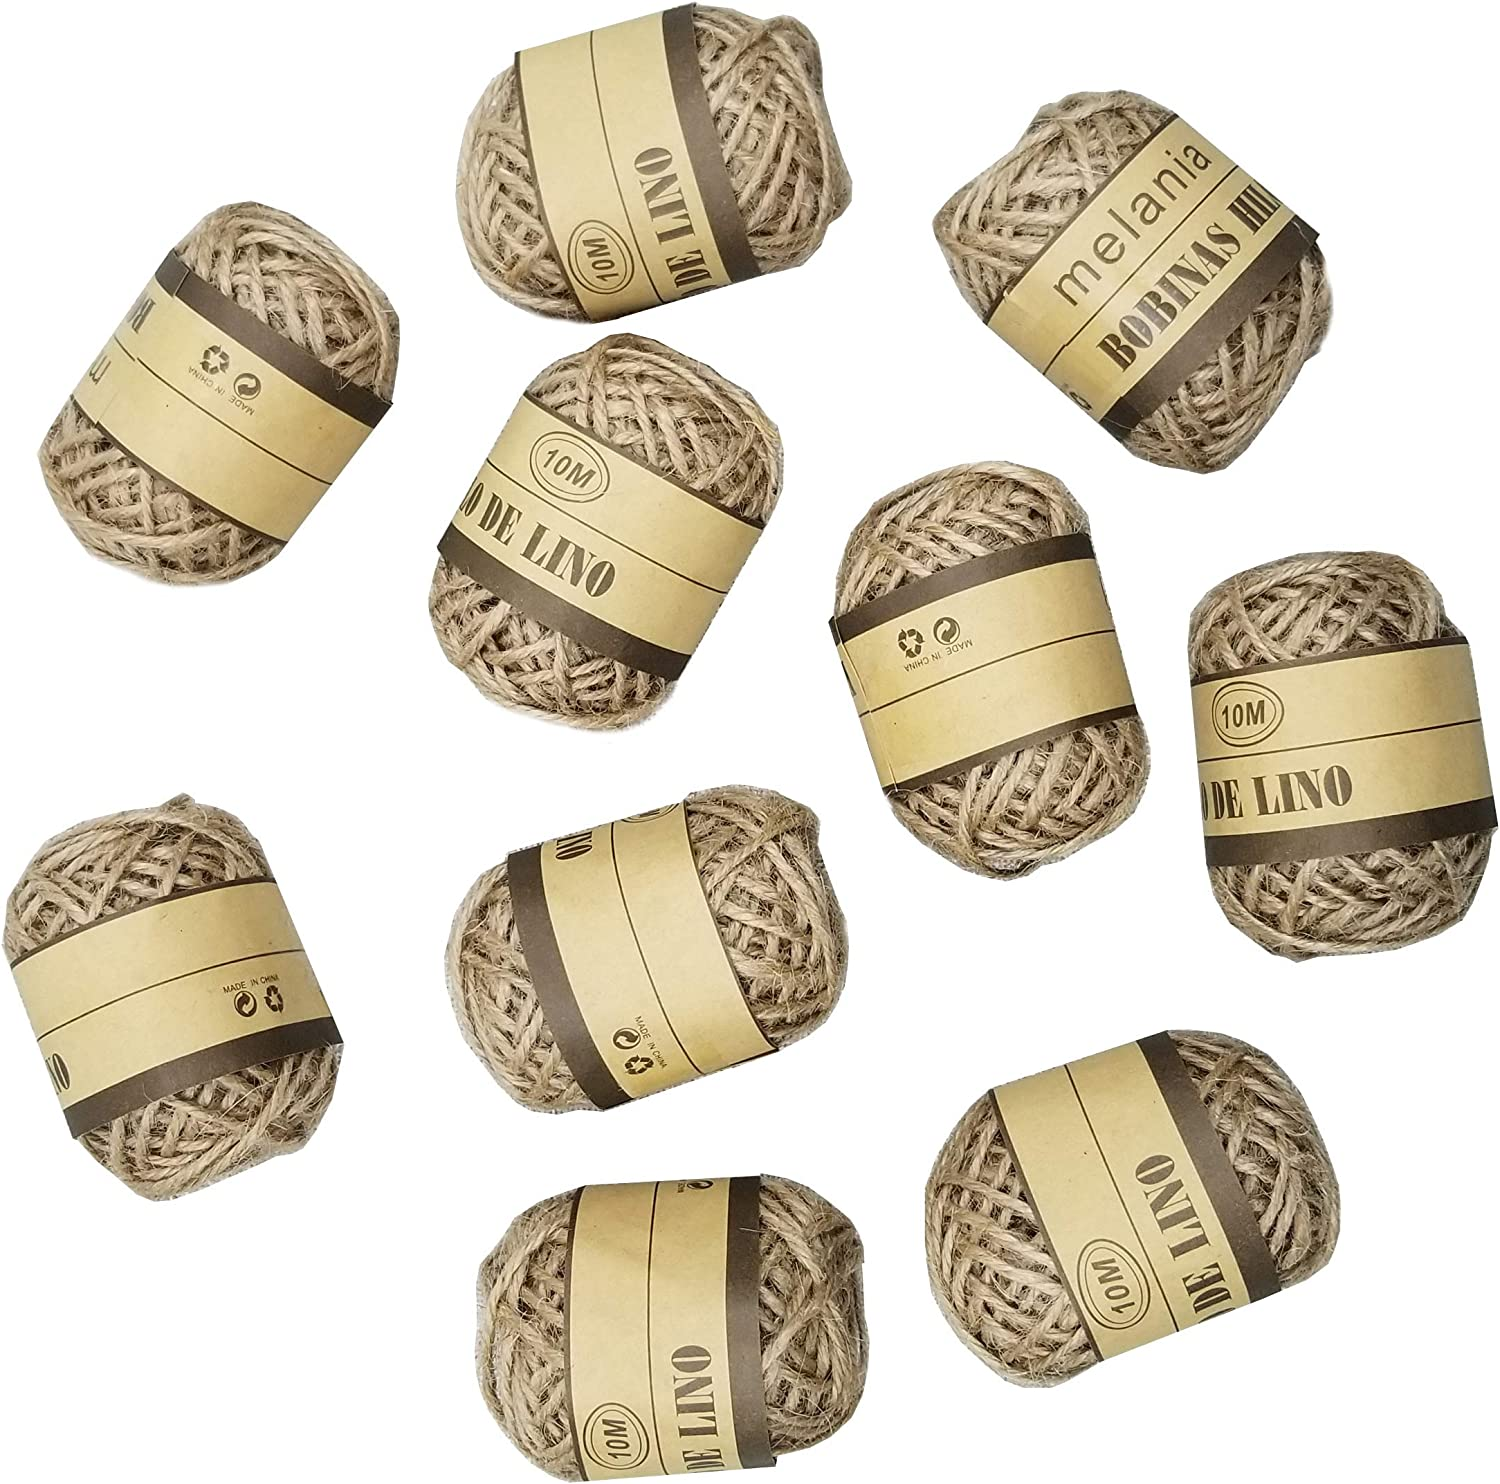 Amazon.com: Natural Twine Cord Jute Twine Rope Thread for DIY Decor Toy  Crafts Parts Vintage Rustic Wedding Decoration,Pack of 100M: Arts, Crafts &  Sewing